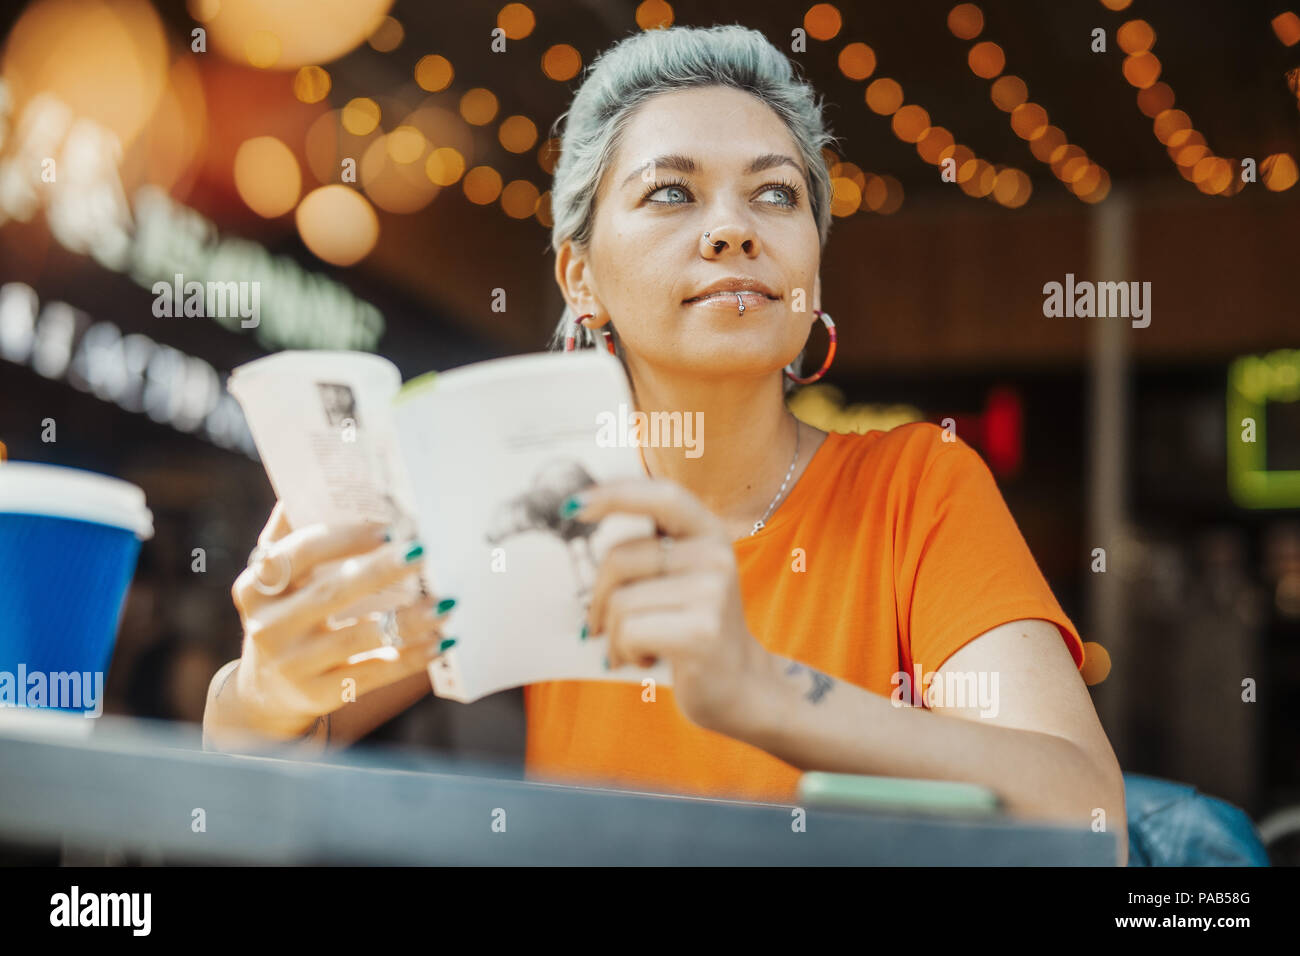 Attractive blonde girl reading book at cafe Photo Stock